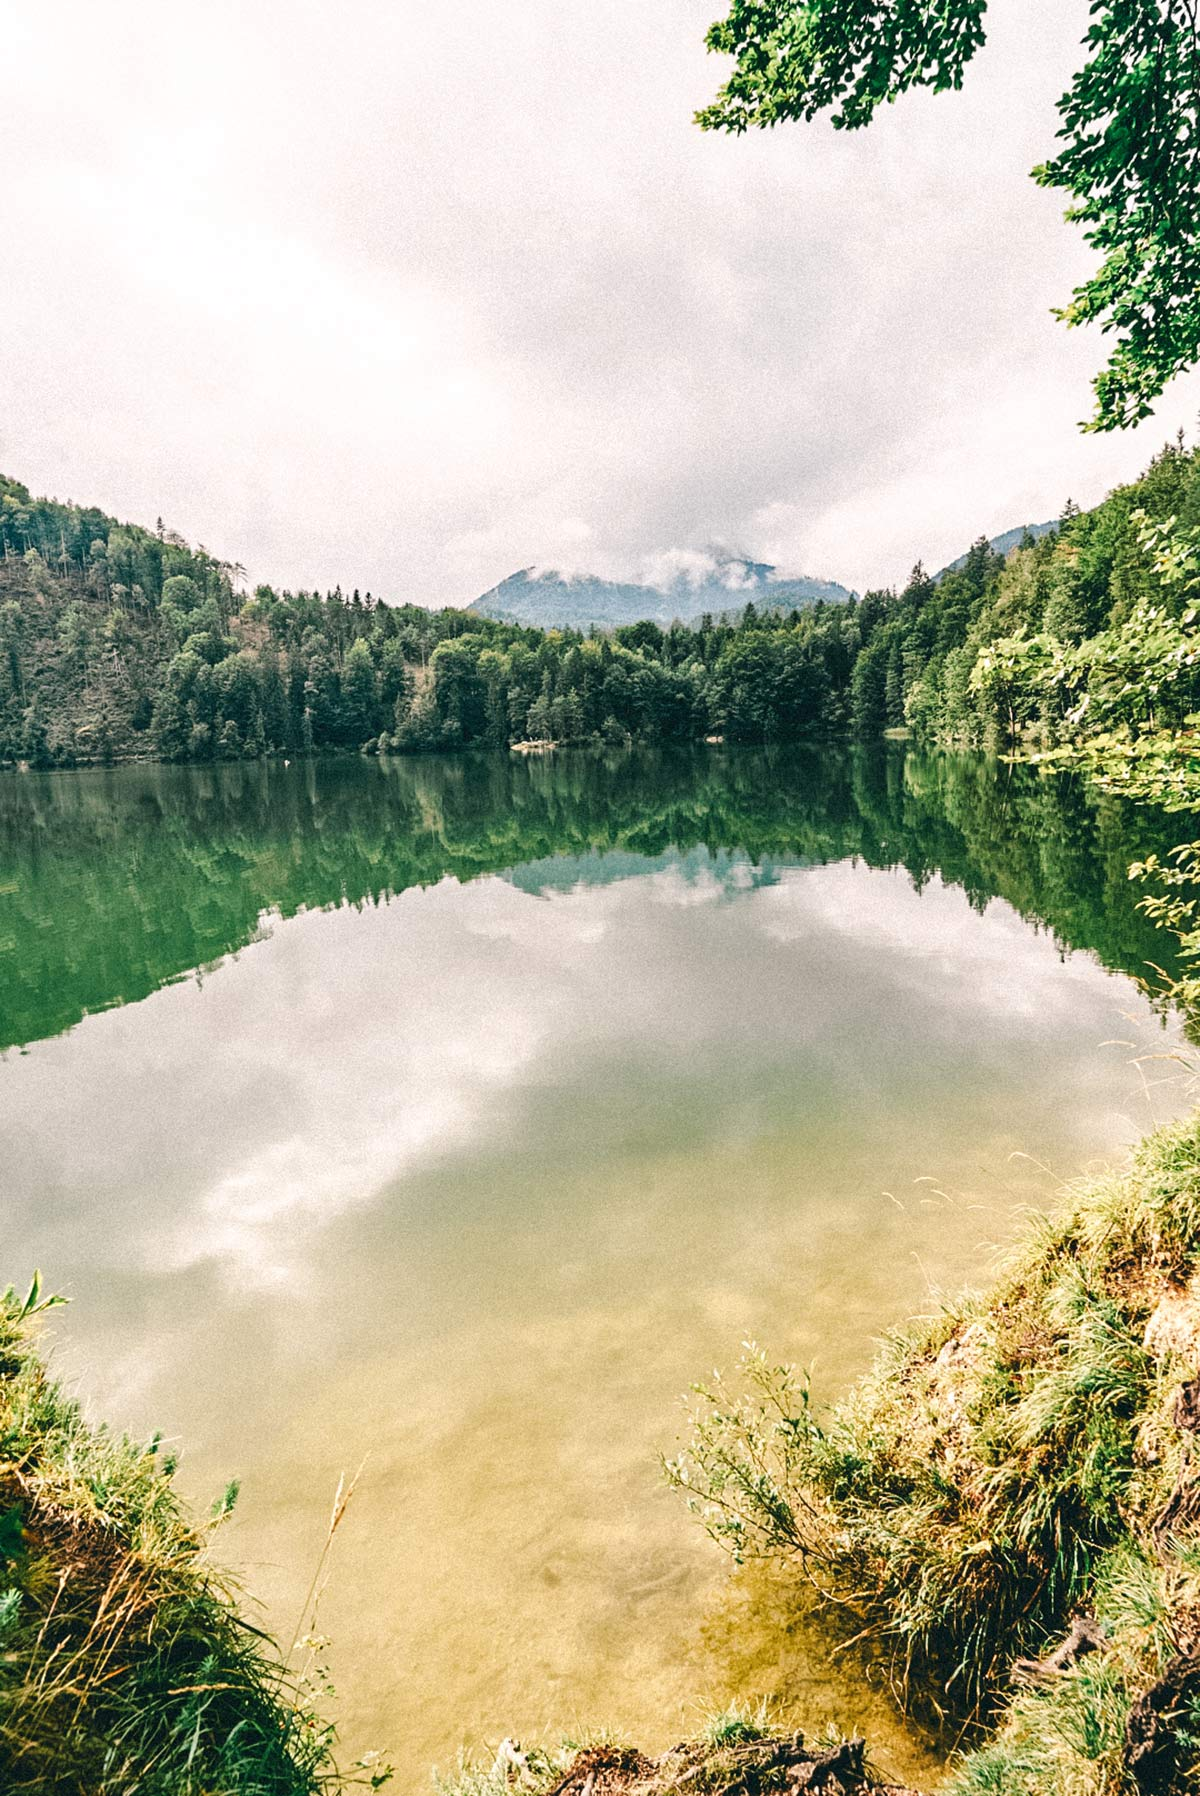 Hechtsee Thiersee